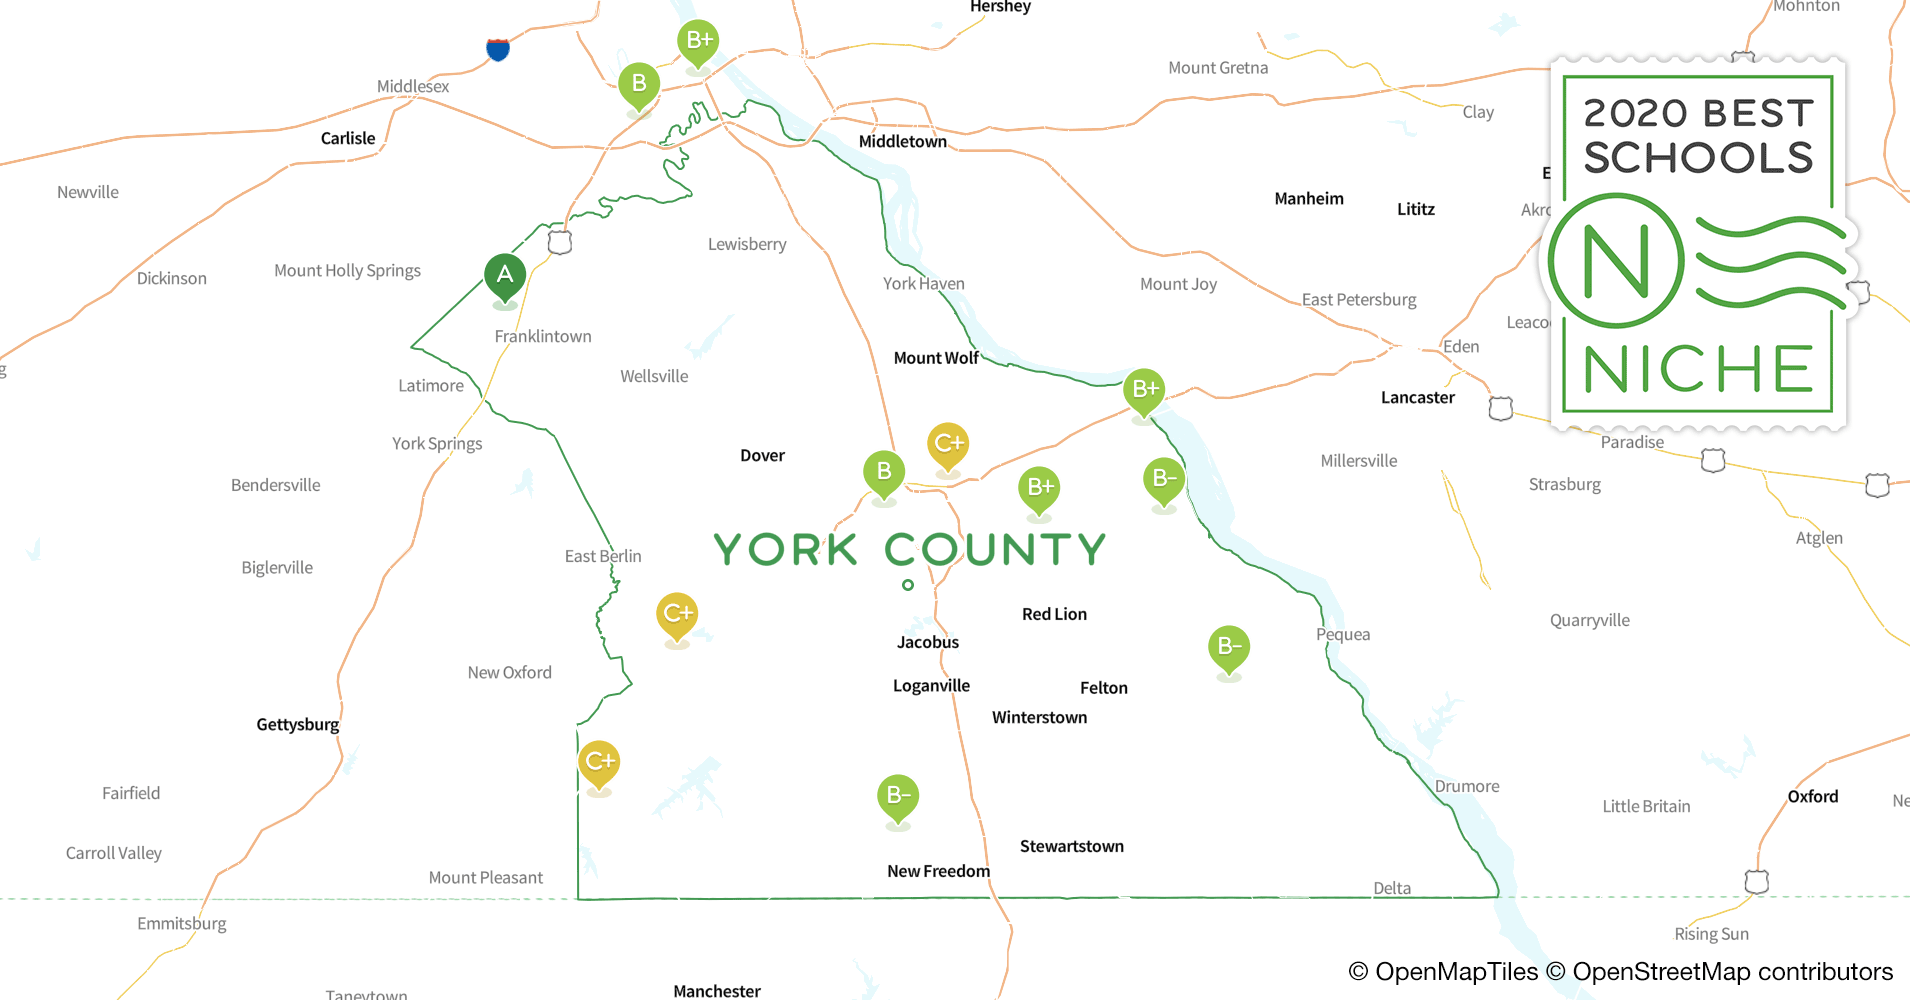 2020 Best High s in York County, PA - Niche York County Pa Map Of Lakes on map of chester county pa, map of douglas county or, map of york city pa, map of pennsylvania, map of warren county pa, map of baltimore county pa, map of potter county pa, map of franklin county pa, map of york college pa, map of grafton, il, map of cumberland county pa, cities in lebanon county pa, map of san diego county ca, map of new castle county de, map of york county nc, events of york county pa, map of adams county pa, map of mckean county pa, map of york county ne, map of erie county pa,